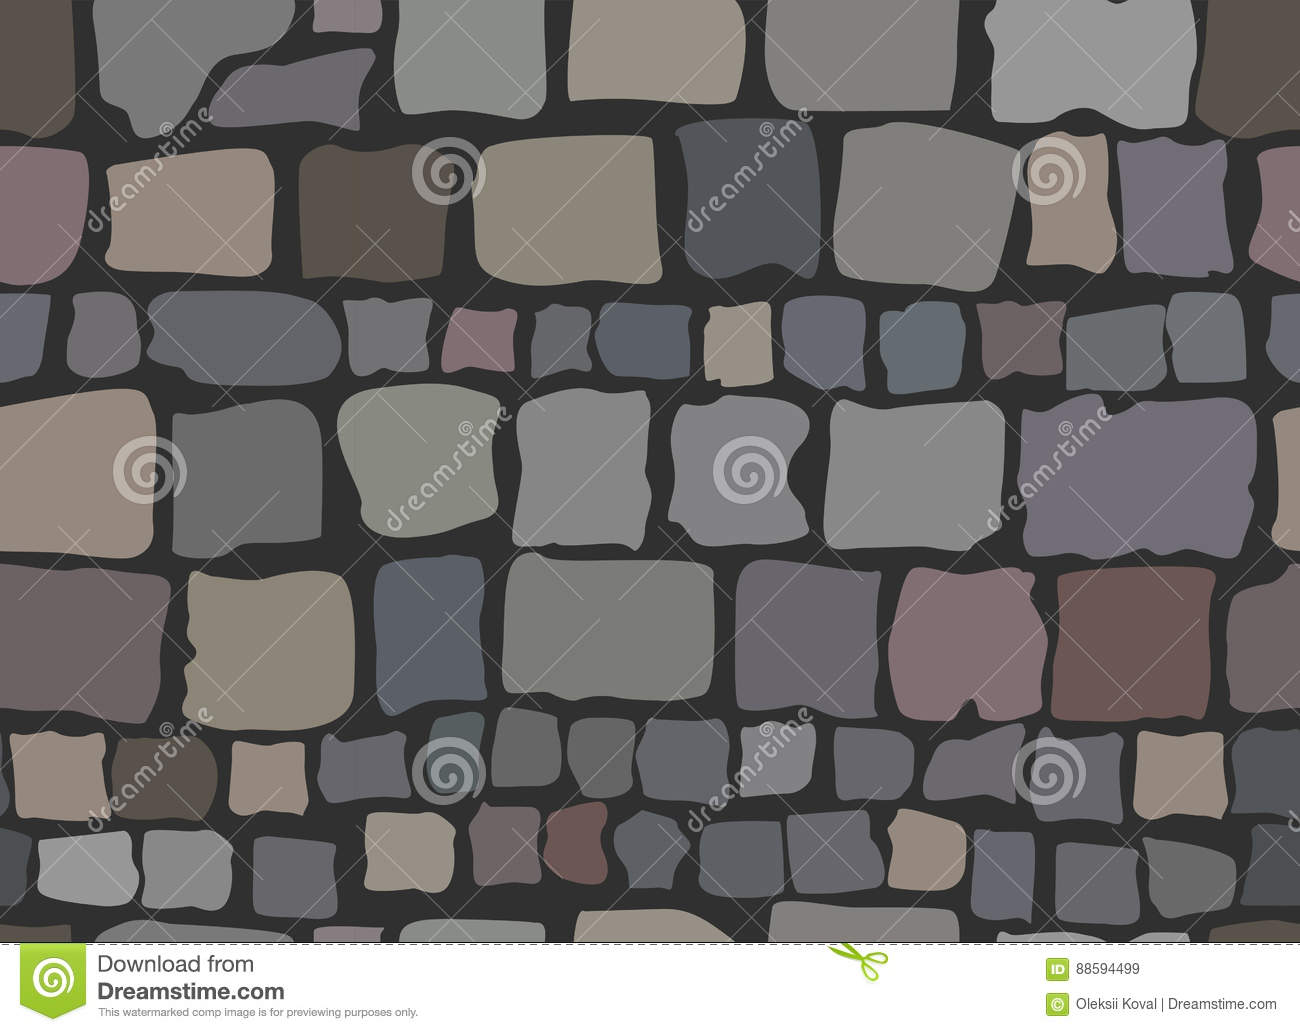 Paving cartoons illustrations vector stock images for Floor covering software free